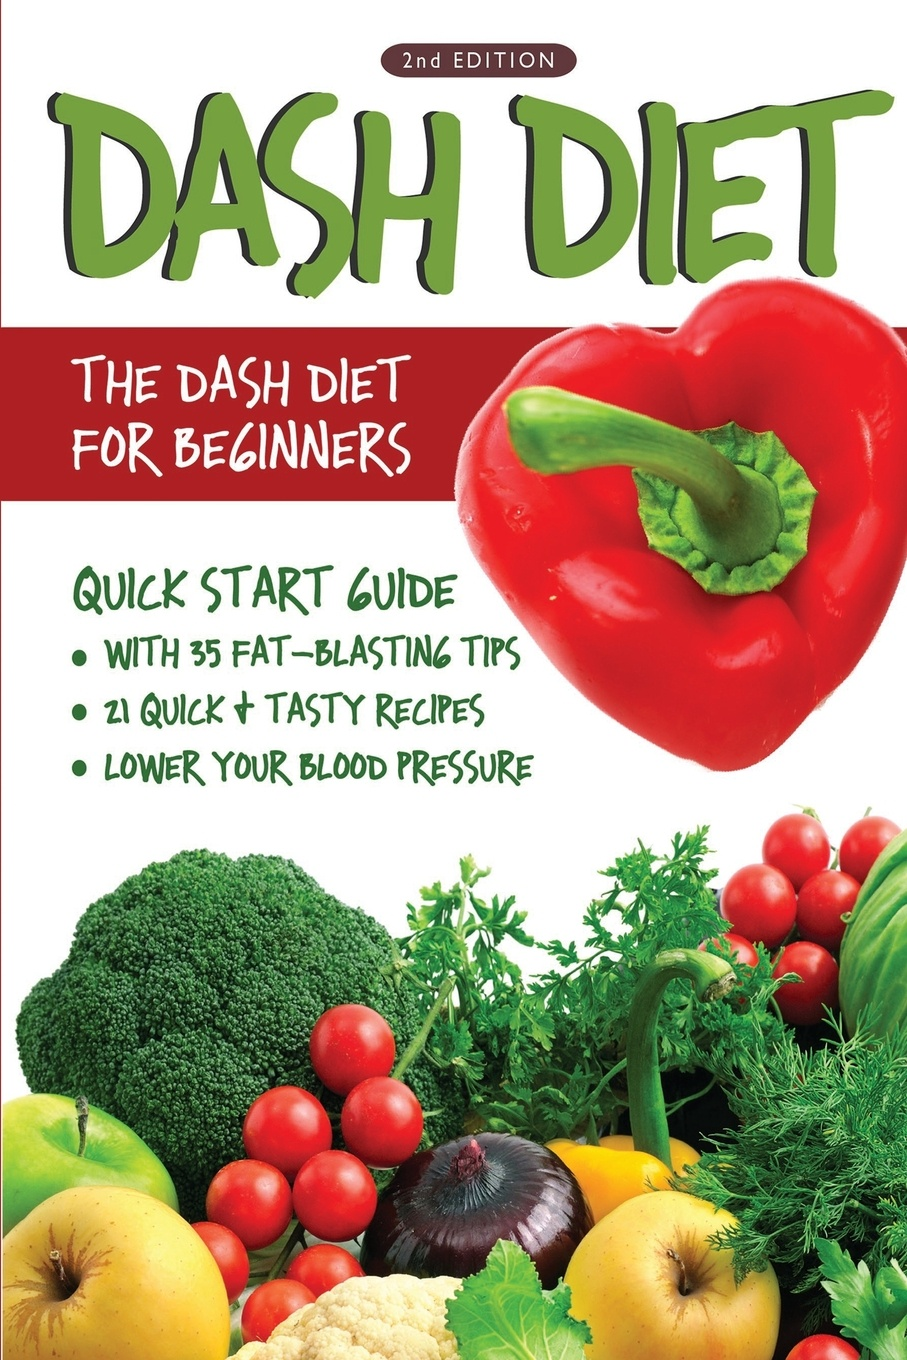 Linda Westwood DASH Diet (2nd Edition). The DASH Diet for Beginners - DASH Diet Quick Start Guide with 35 FAT-BLASTING Tips + 21 Quick & Tasty Recipes That Will Lower YOUR Blood Pressure! marc brodine blood pressure